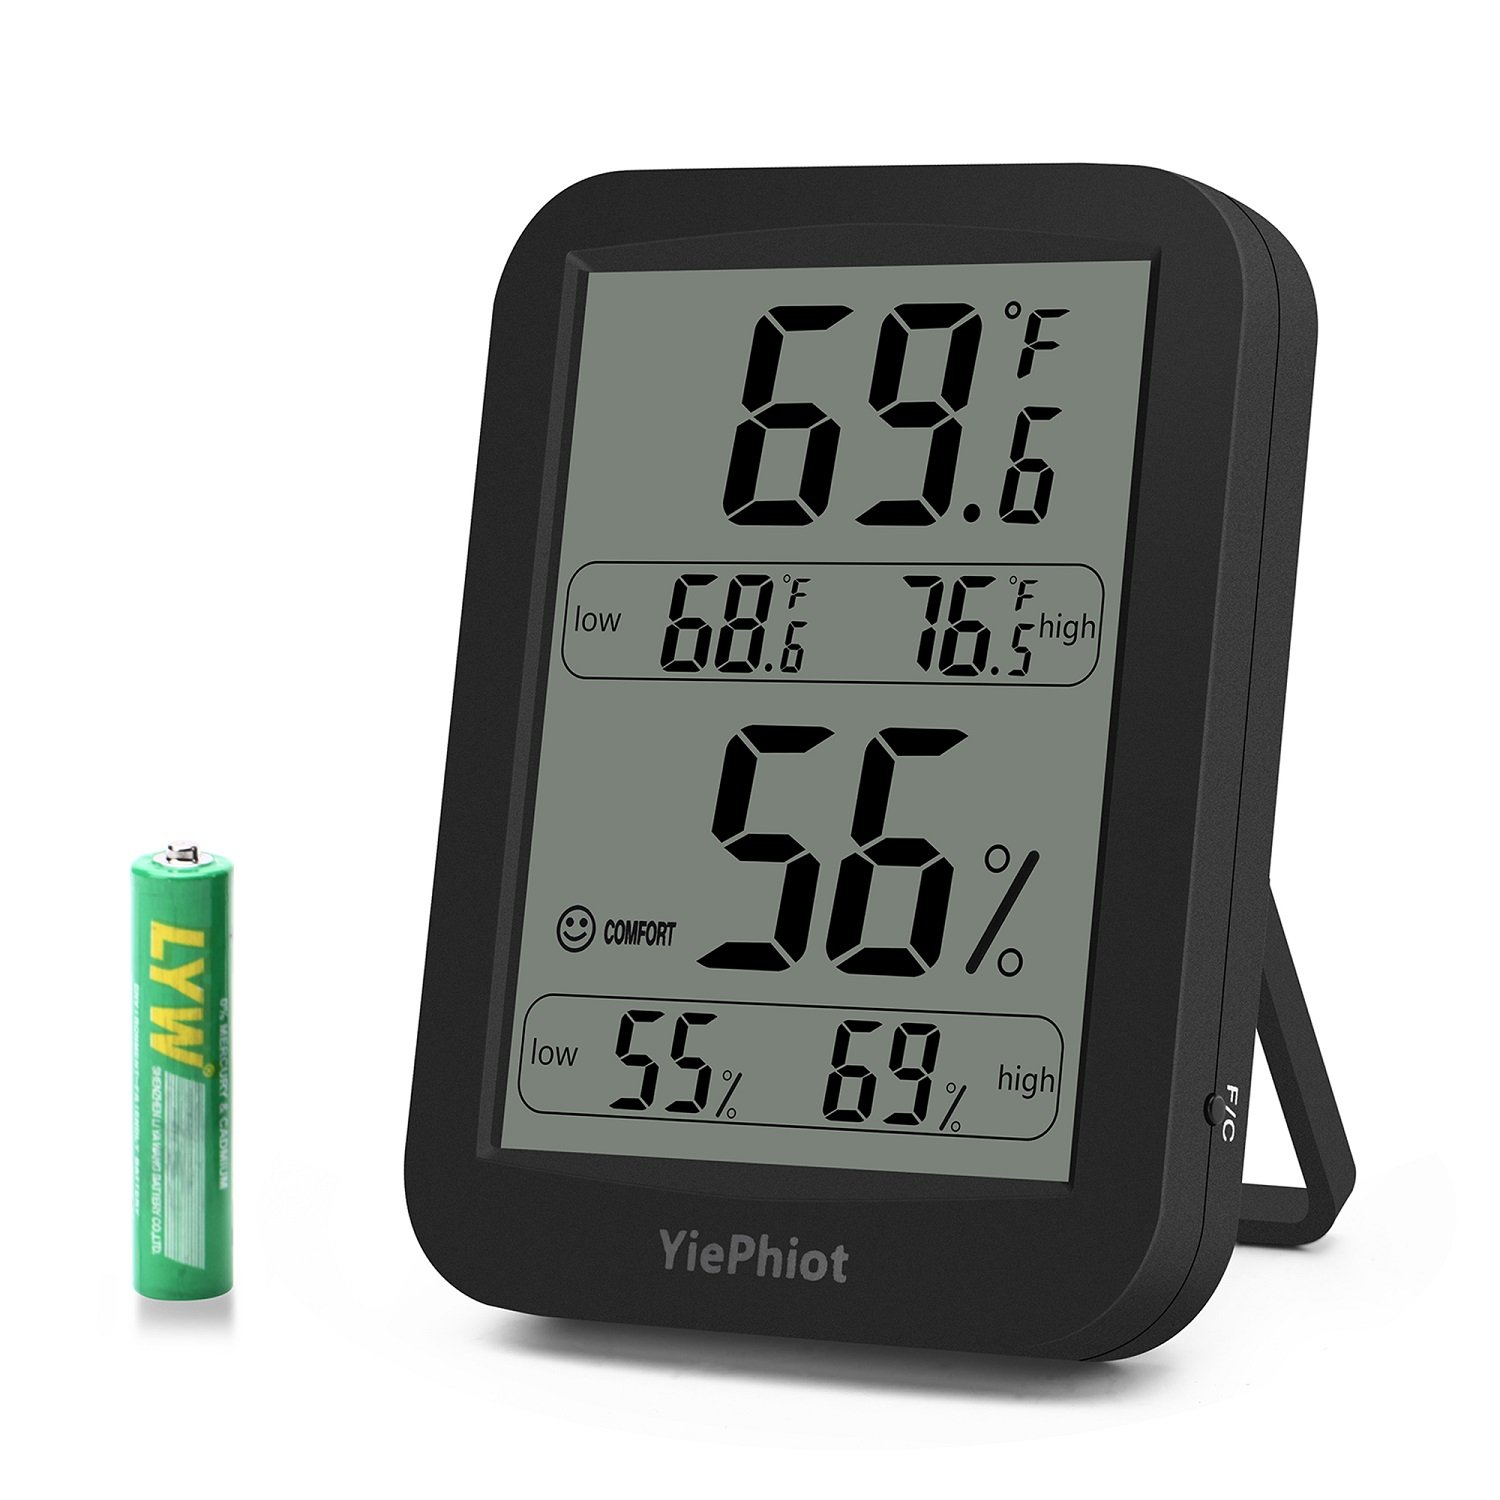 YiePhiot Digital Hygrometer Indoor Outdoor Black Thermometer Humidity Monitor Large LCD Display with Temperature Gauge Humidity Meter